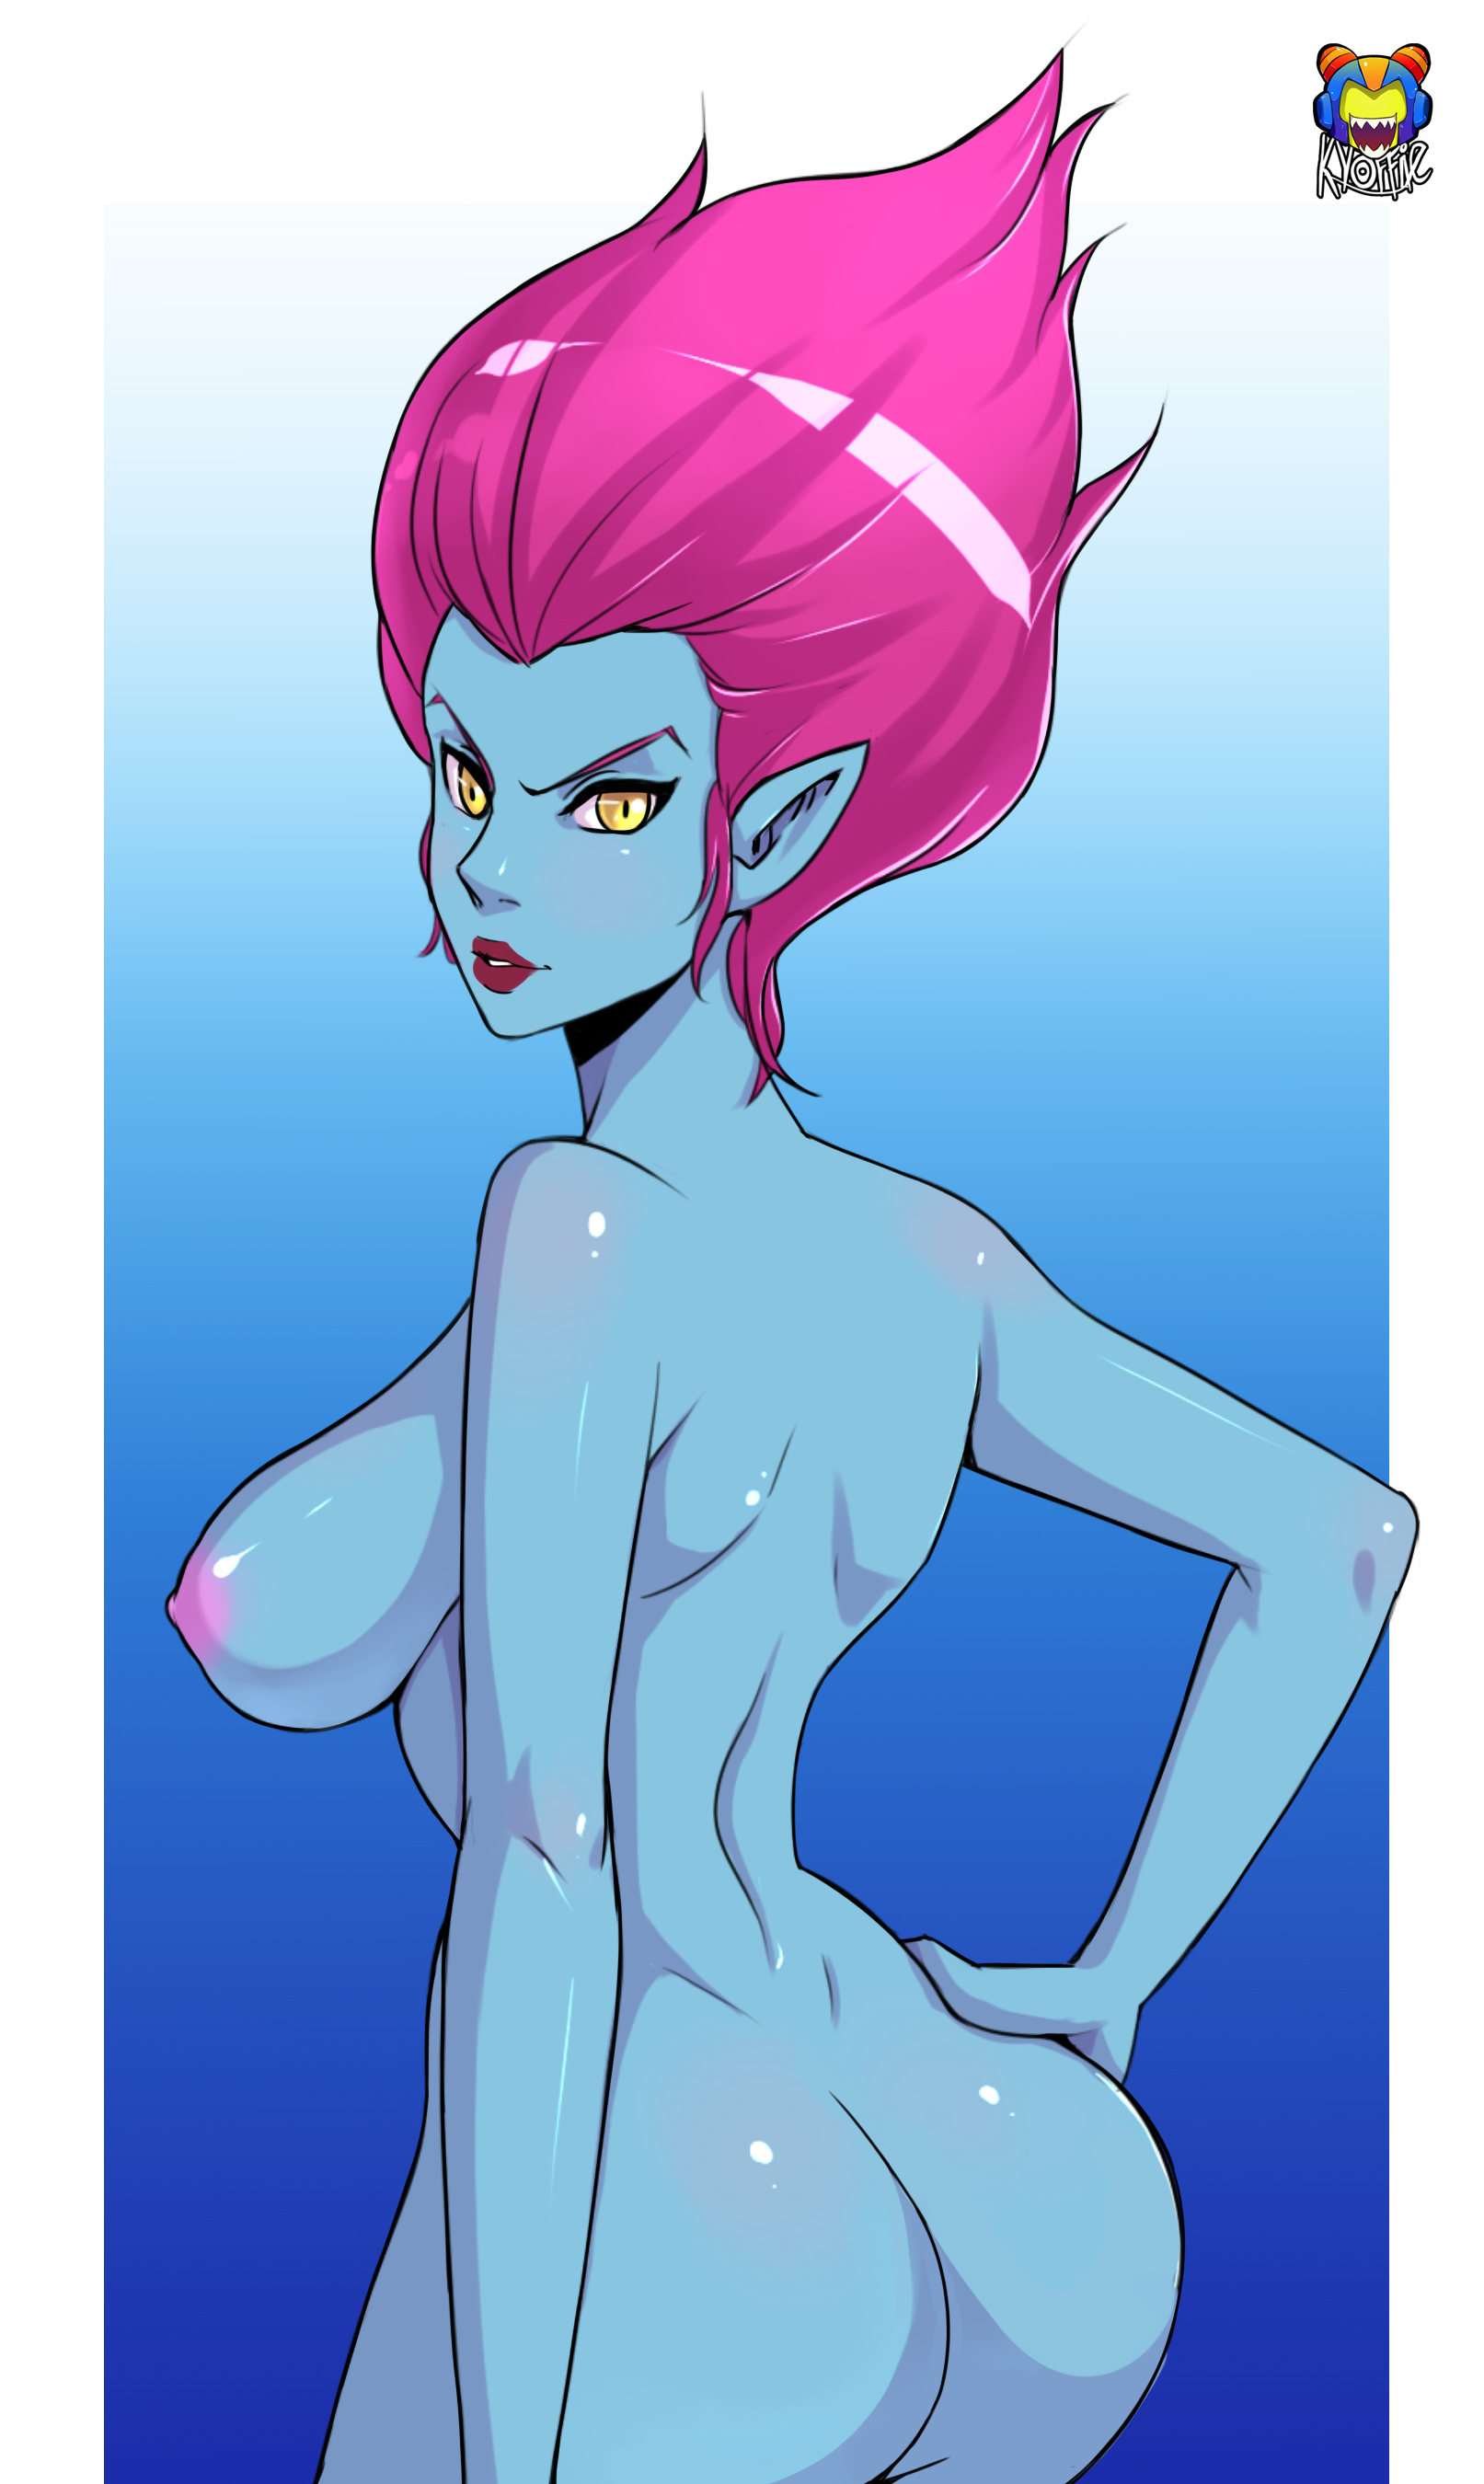 2434383 - Evelynn Kyoffie League_of_Legends